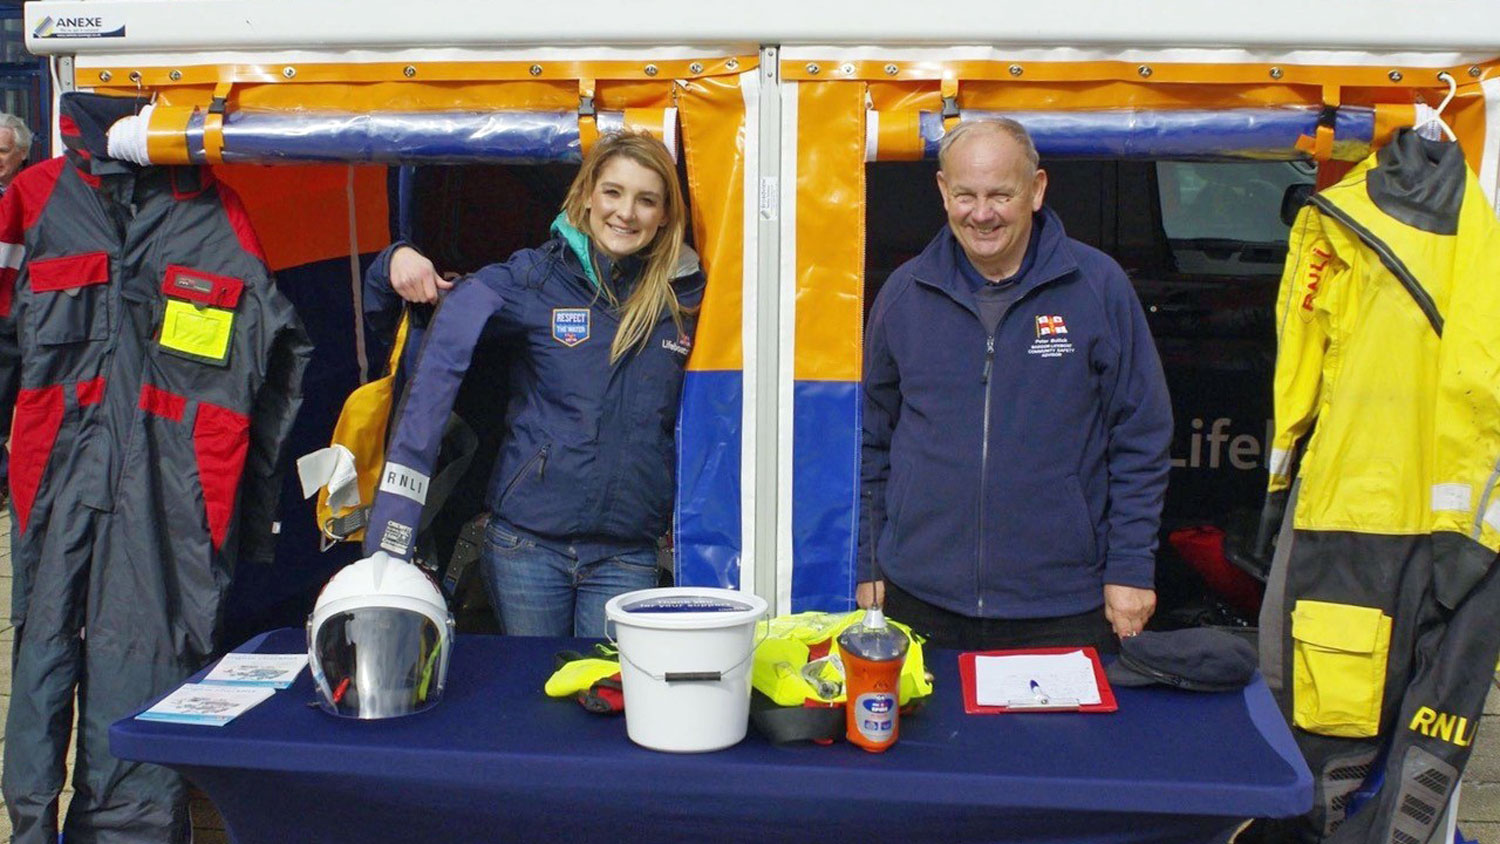 RNLI Community Safety Adviser Peter Bullick with a fellow water safety volunteer at an event